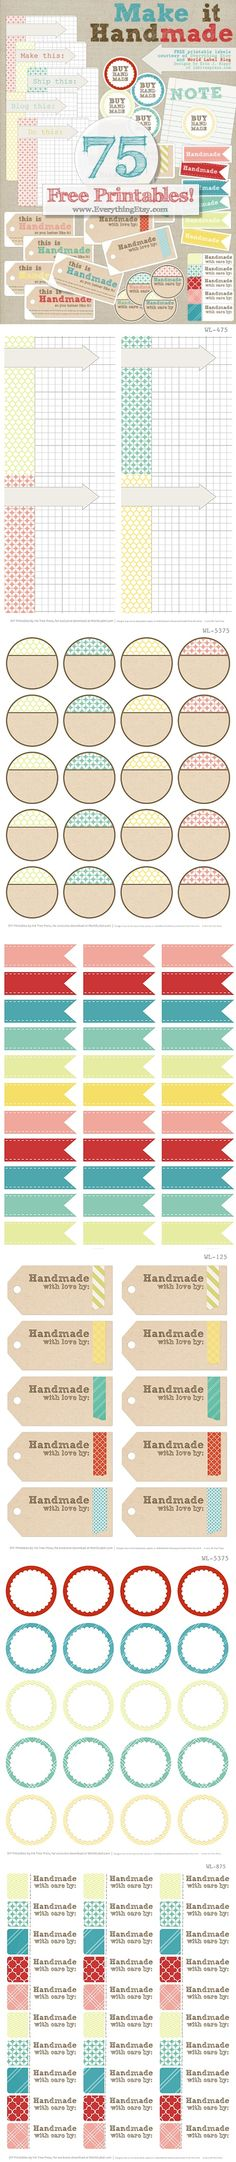 Many free printable labels - with easy to customize text                                                                                                                                                                                 Mehr